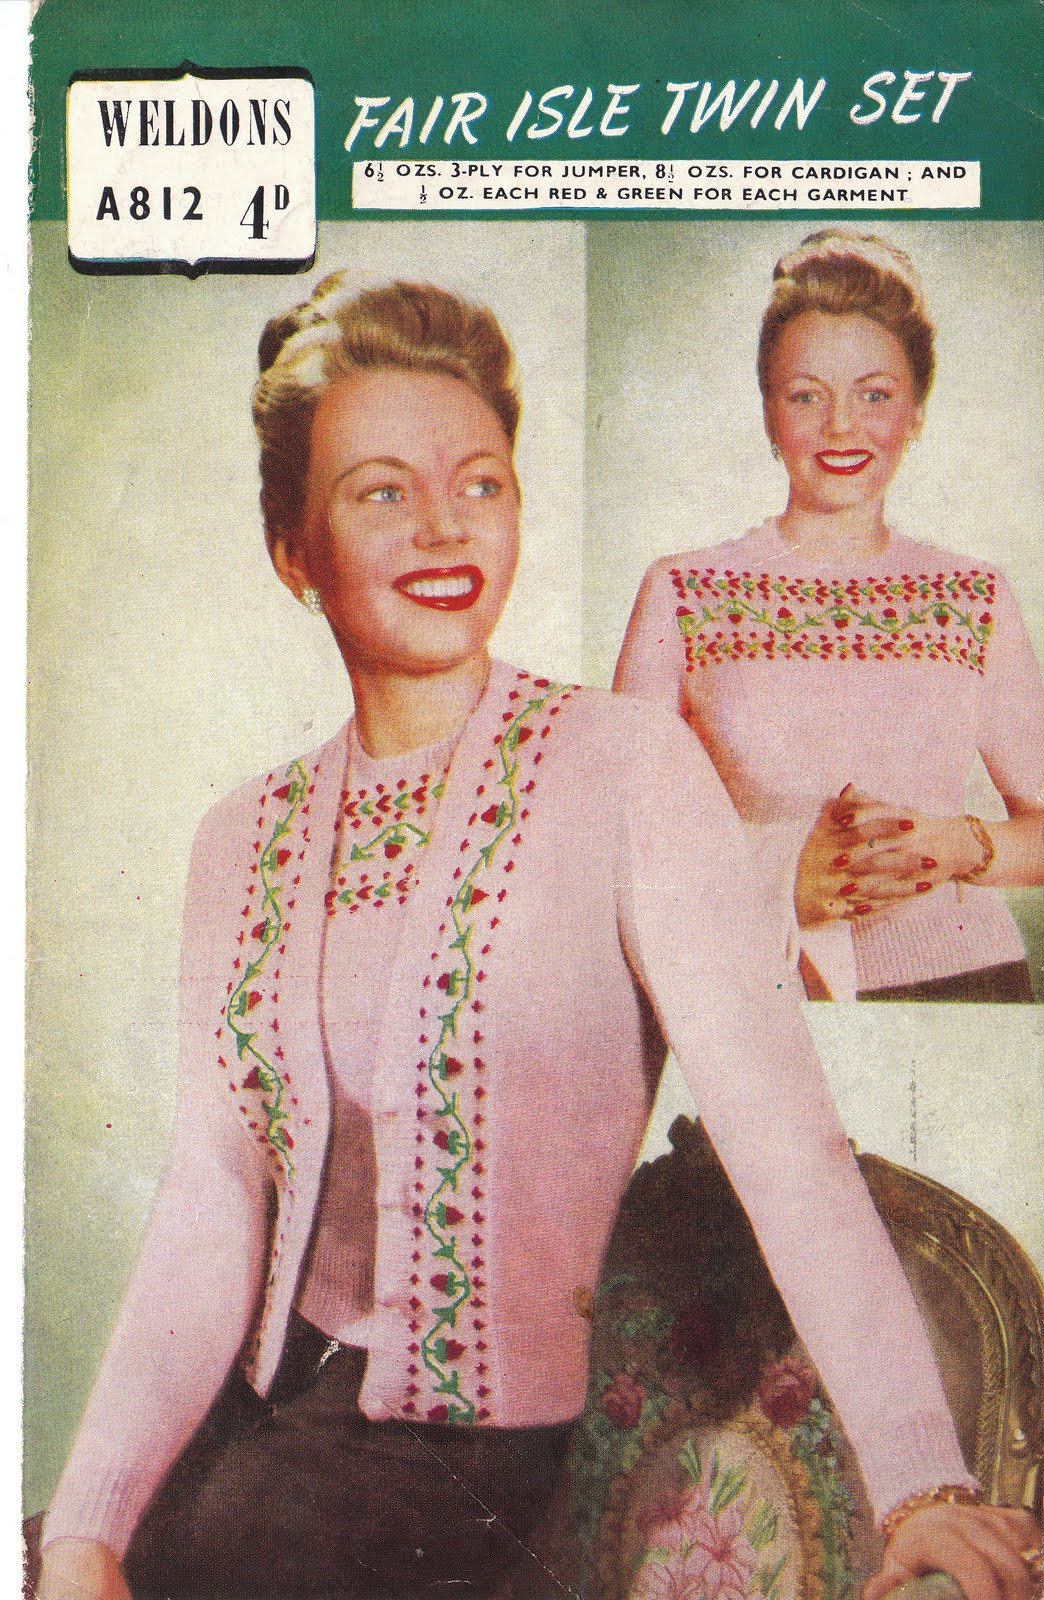 Knitting: Some beautiful fairisle knitting from the 1950s and 30s